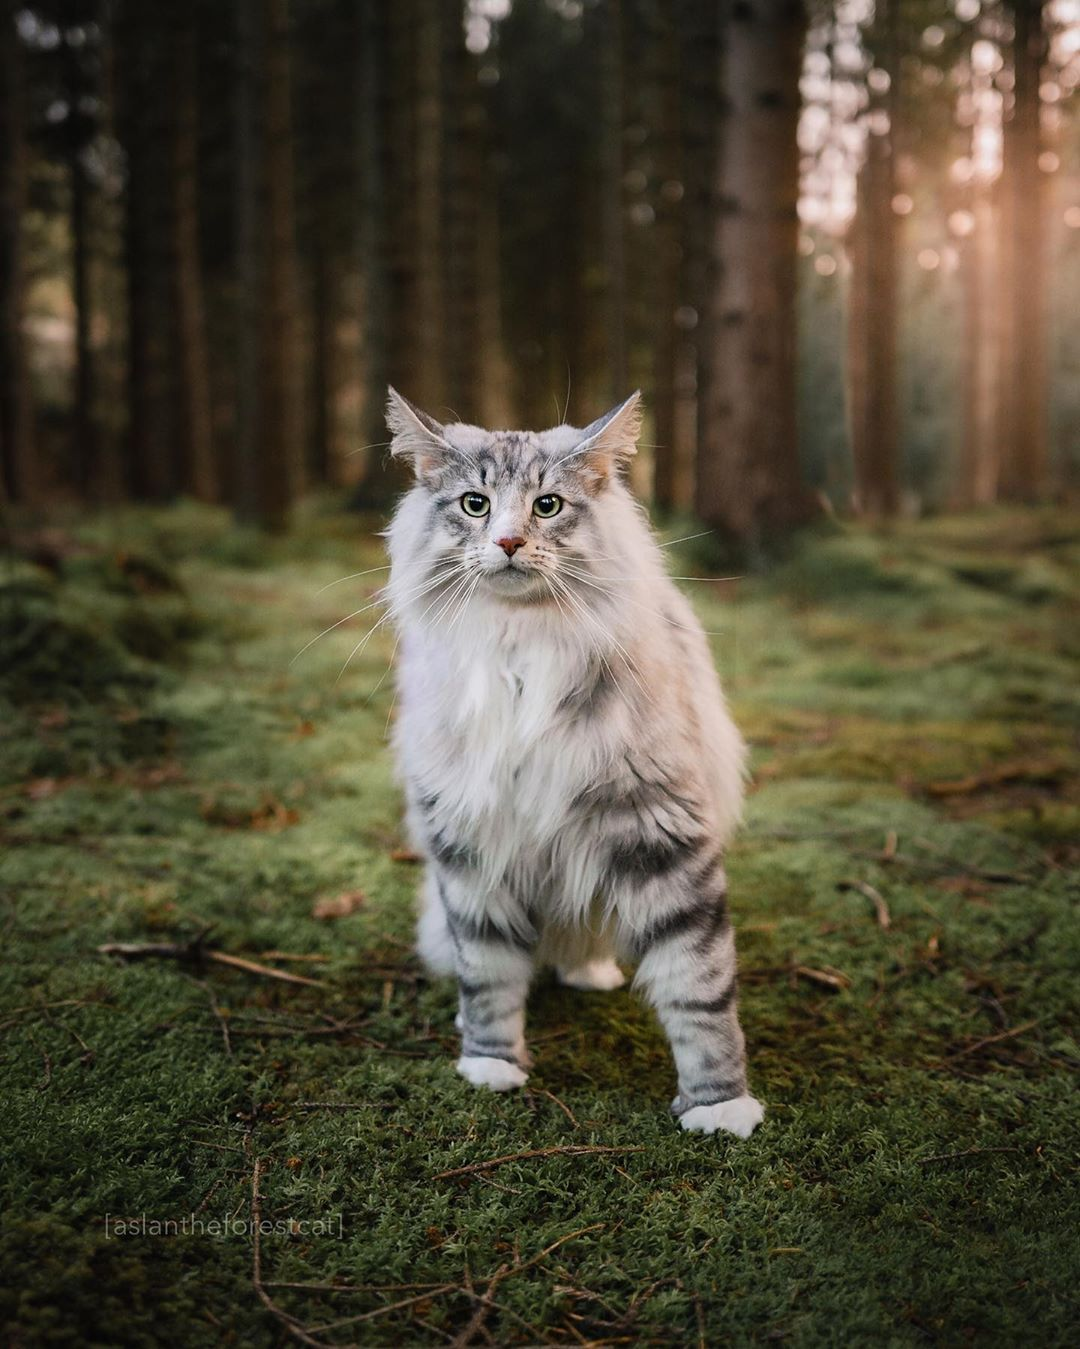 Top 10 Most Beautiful Cat Breeds In The World in 2020